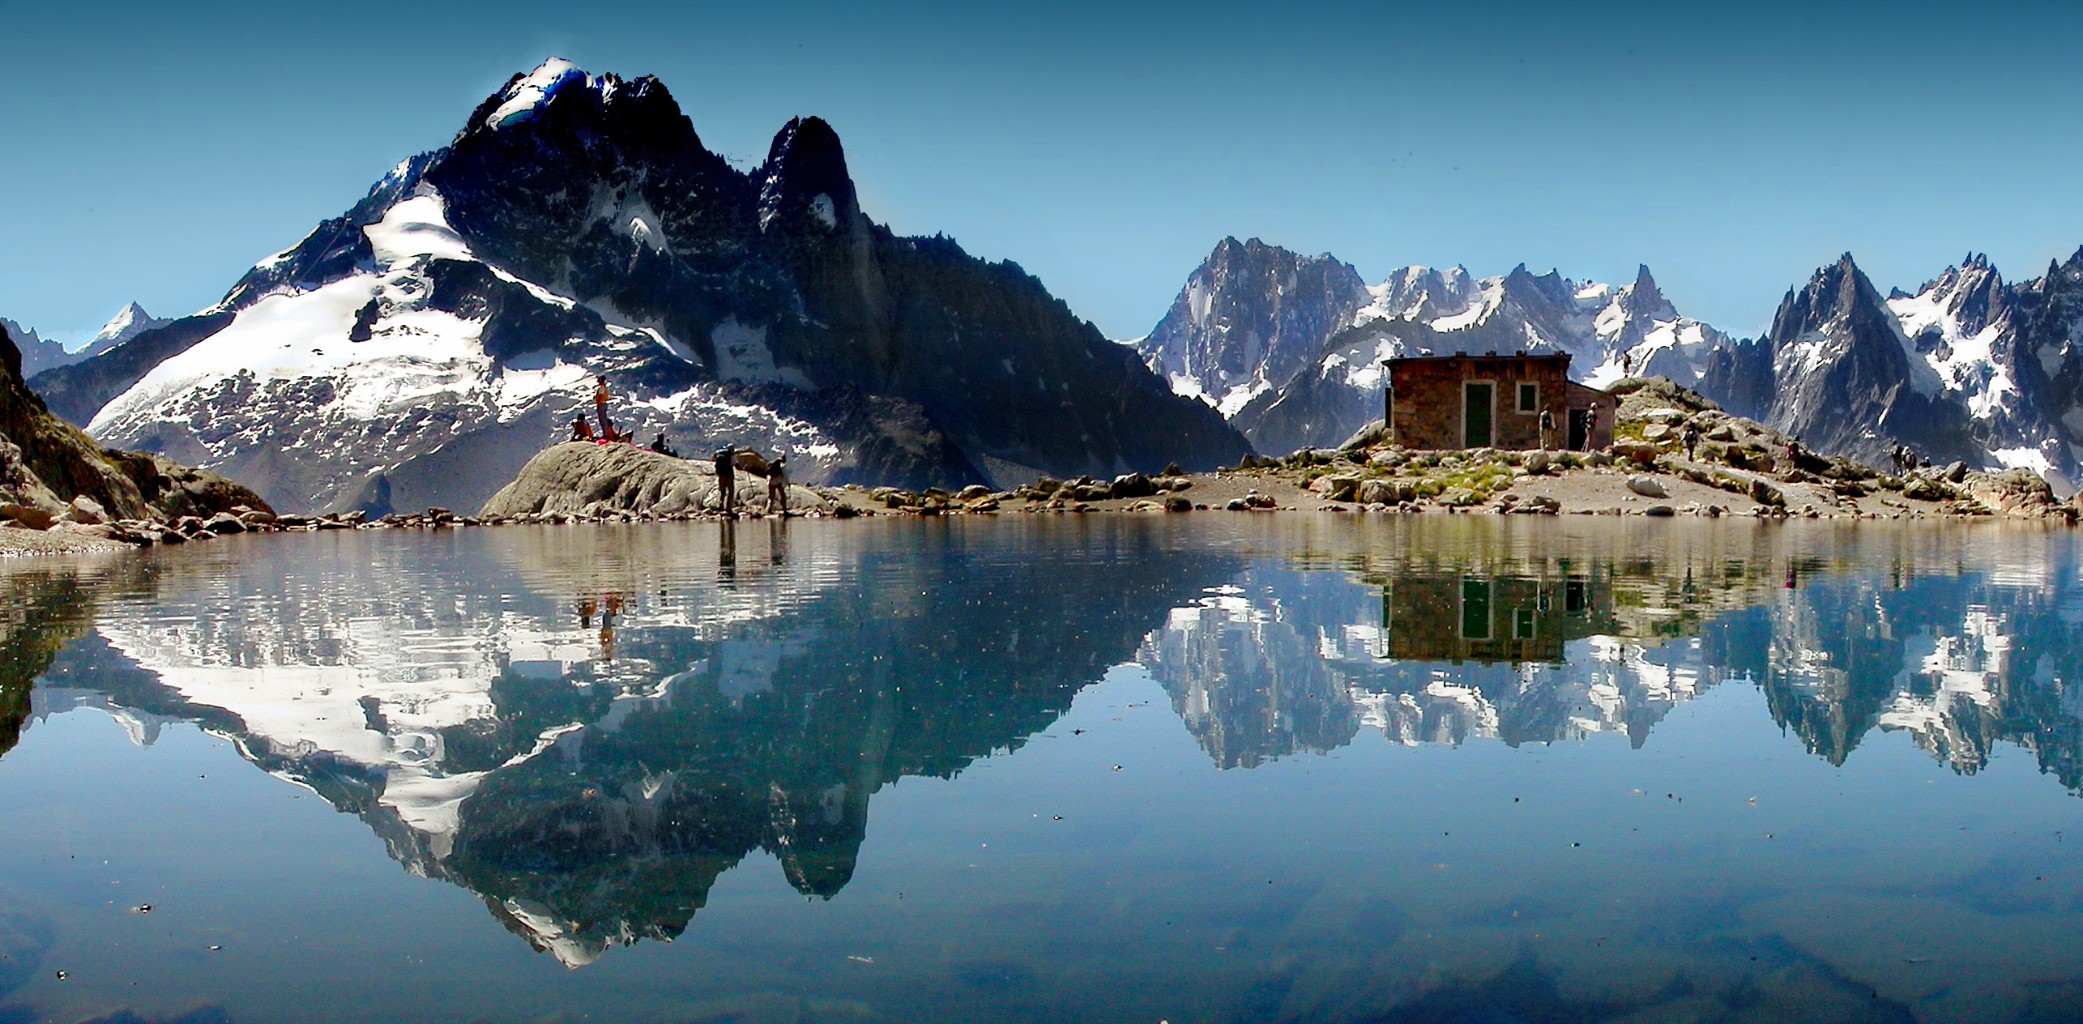 Lac blanc mountain hike chamonix ski resort france